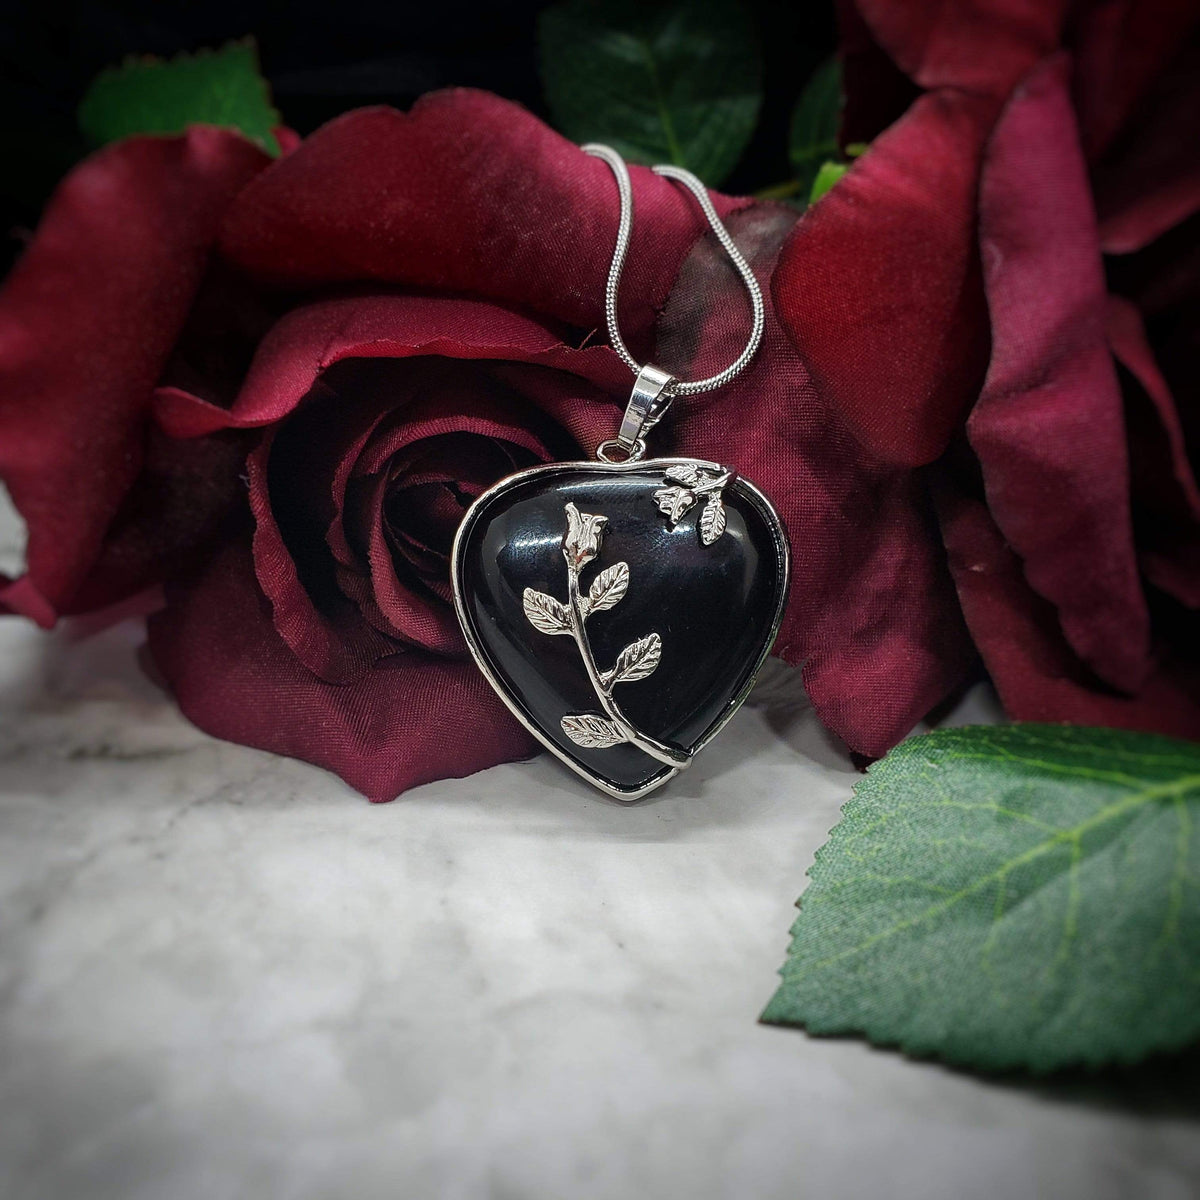 Obsidian Blooming Heart Pendant Stones